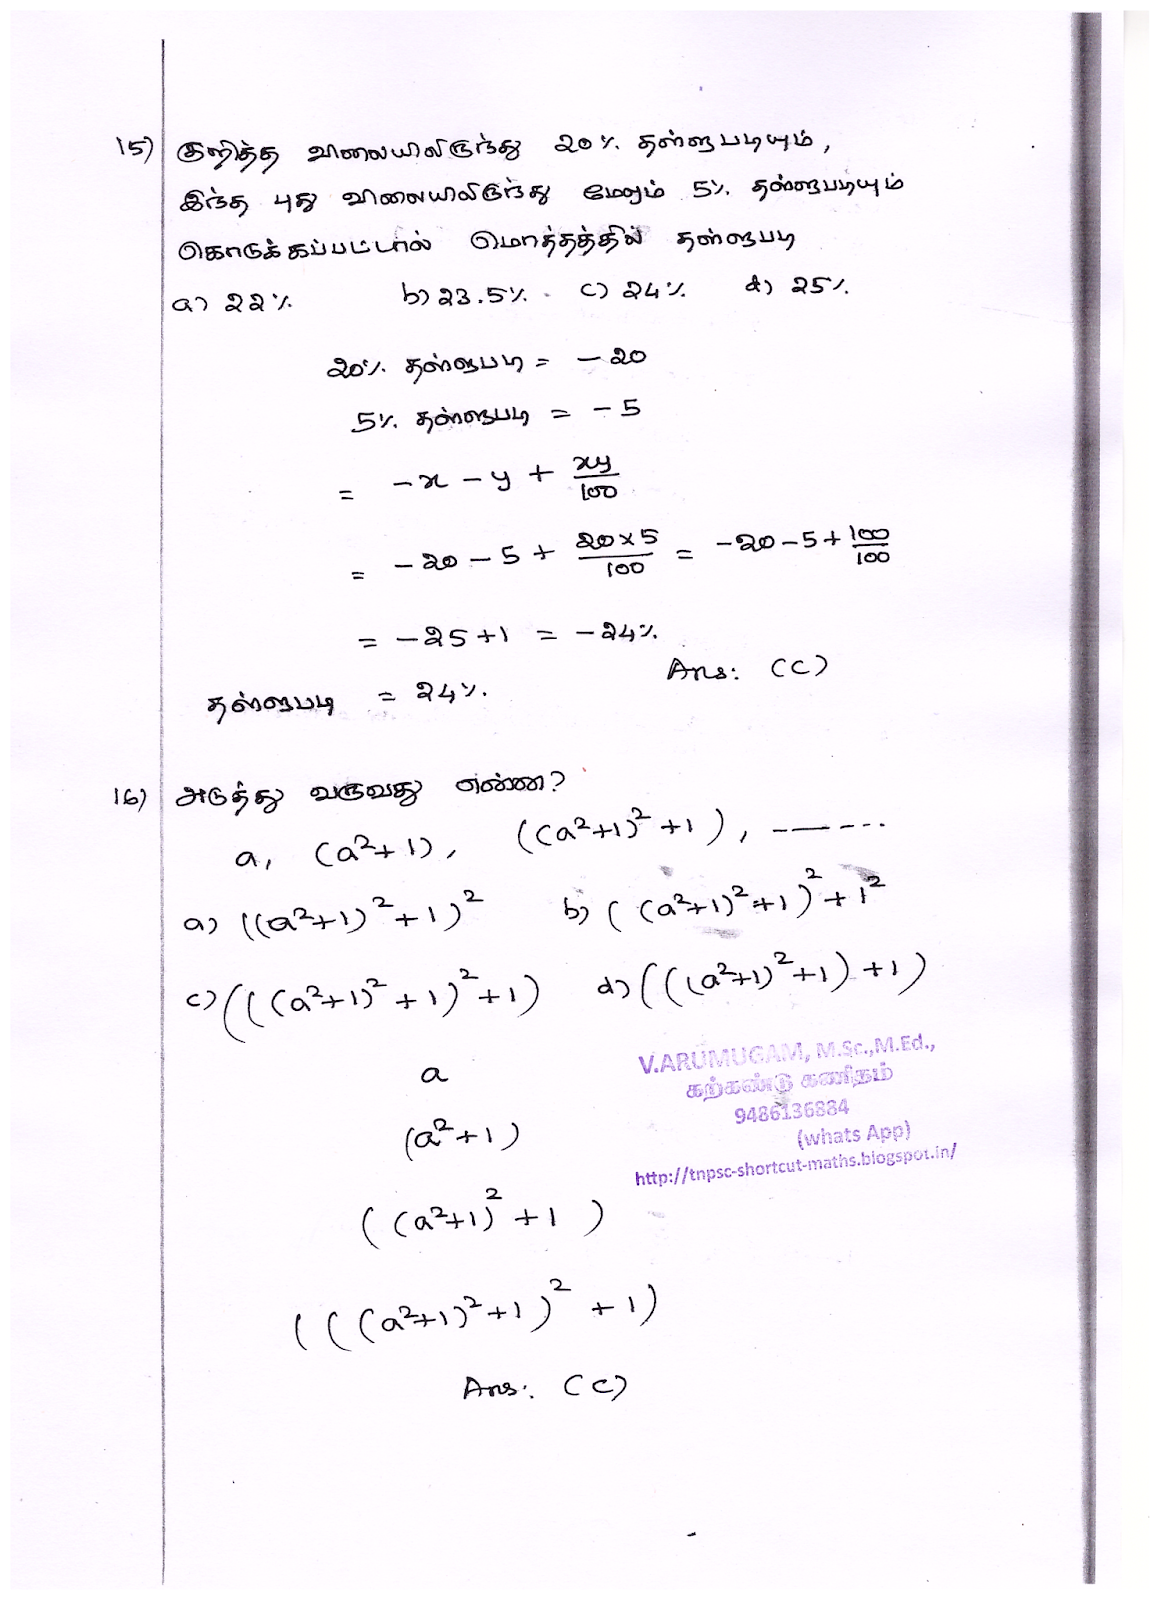 TNPSC-2018-Q-04-COMBINED ENGINEERING SERVICES EXAMINATION-EXAM DATE: 24.02.2018 FN & AN